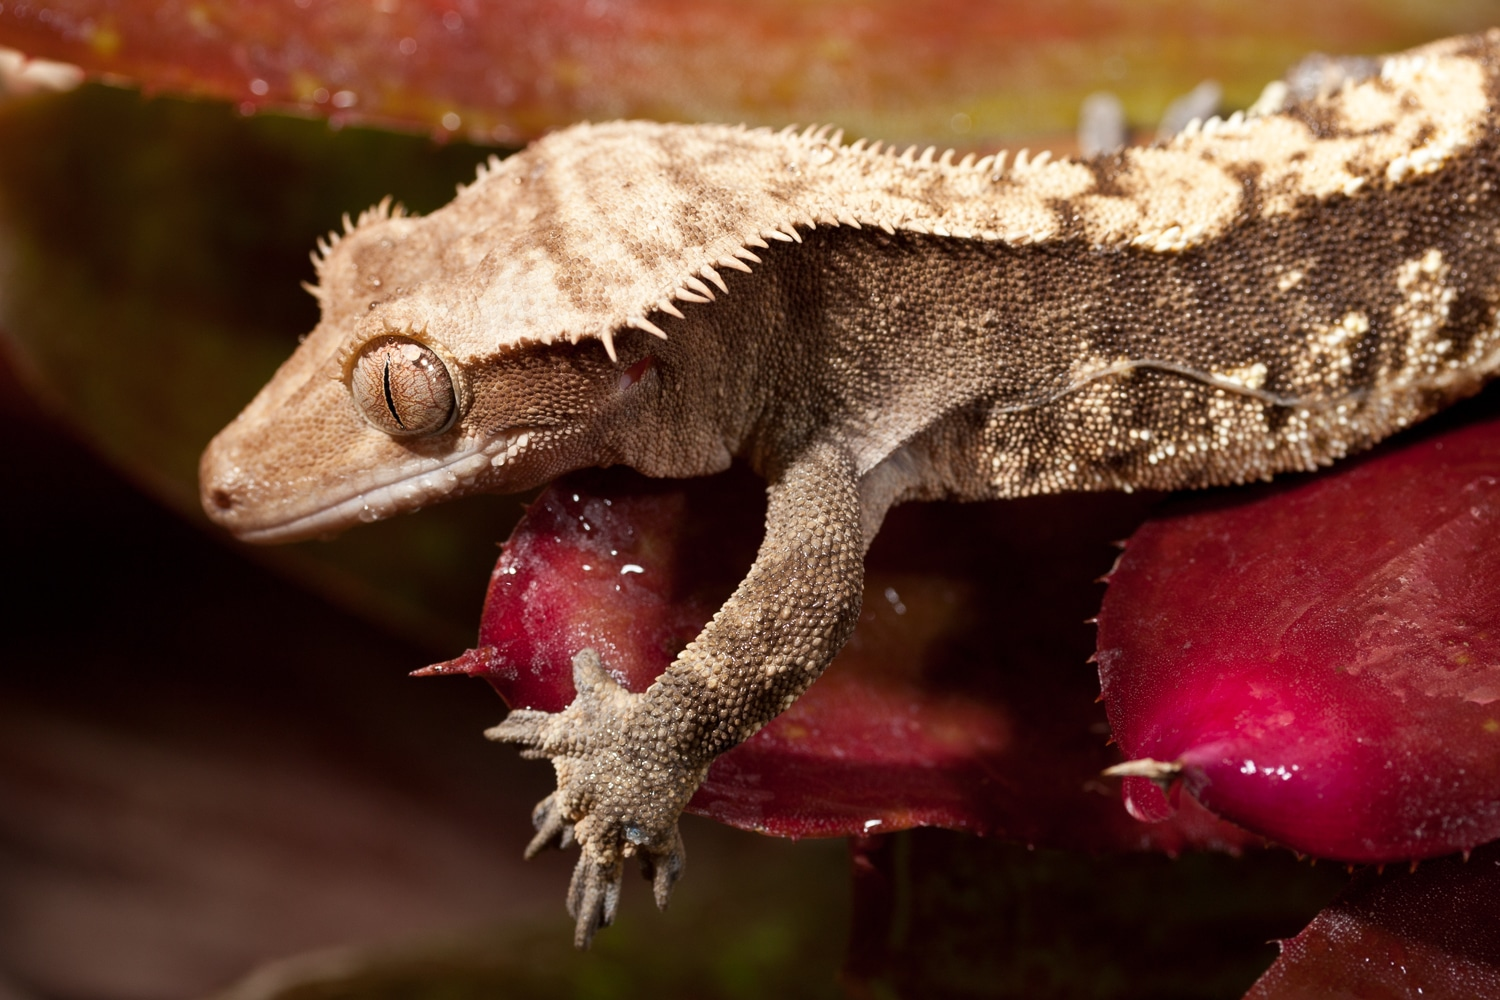 Lizard Relaxing on a Red Plant